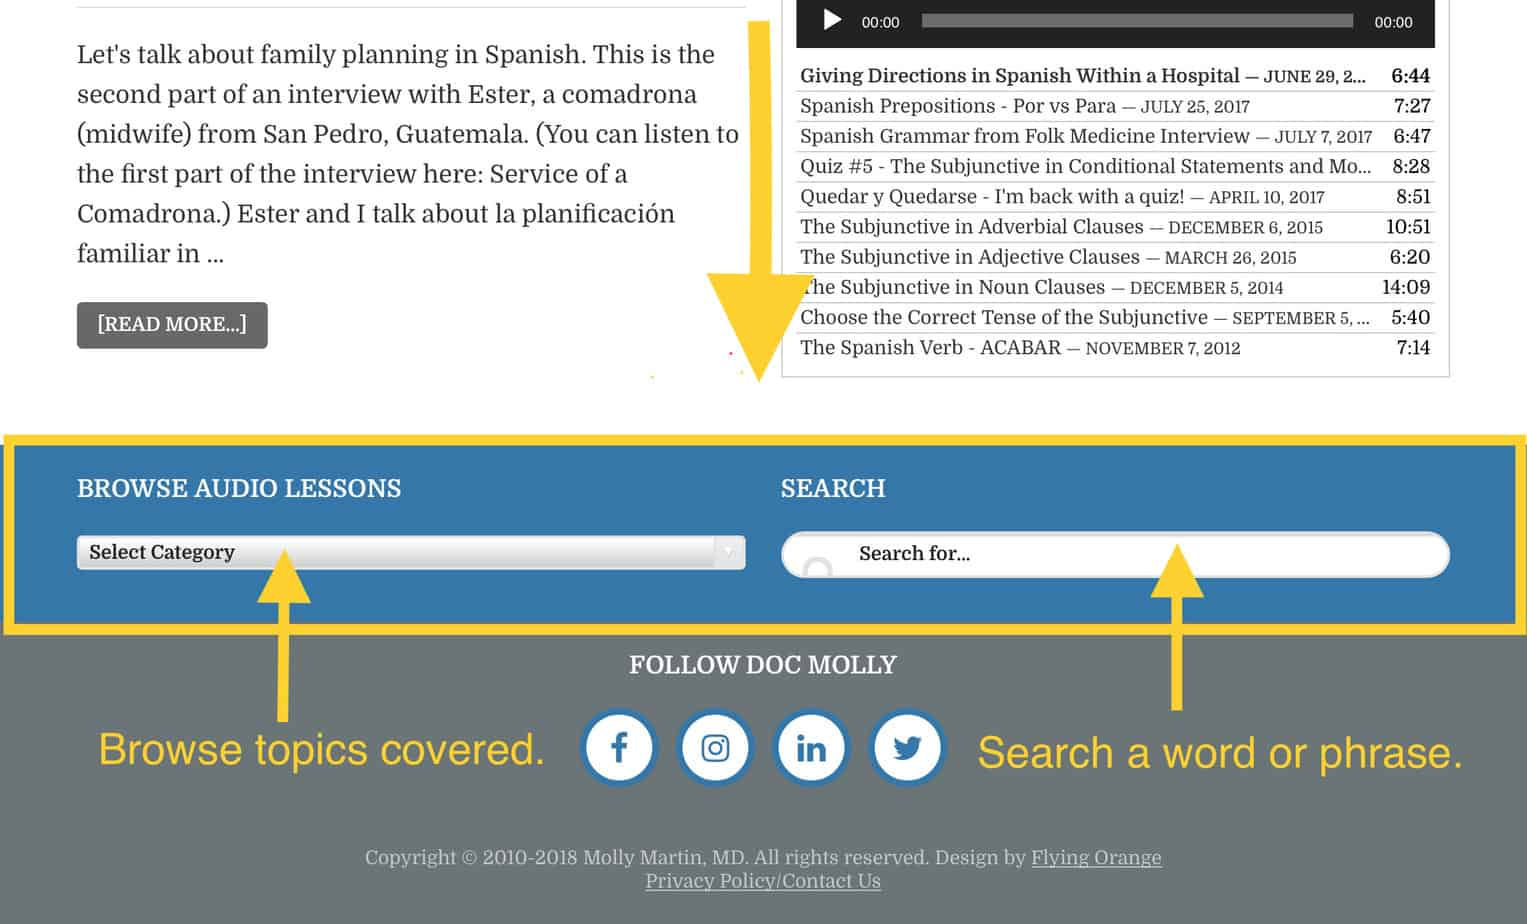 Search Spanish topics using the browse and search widgets at the bottom of each page.